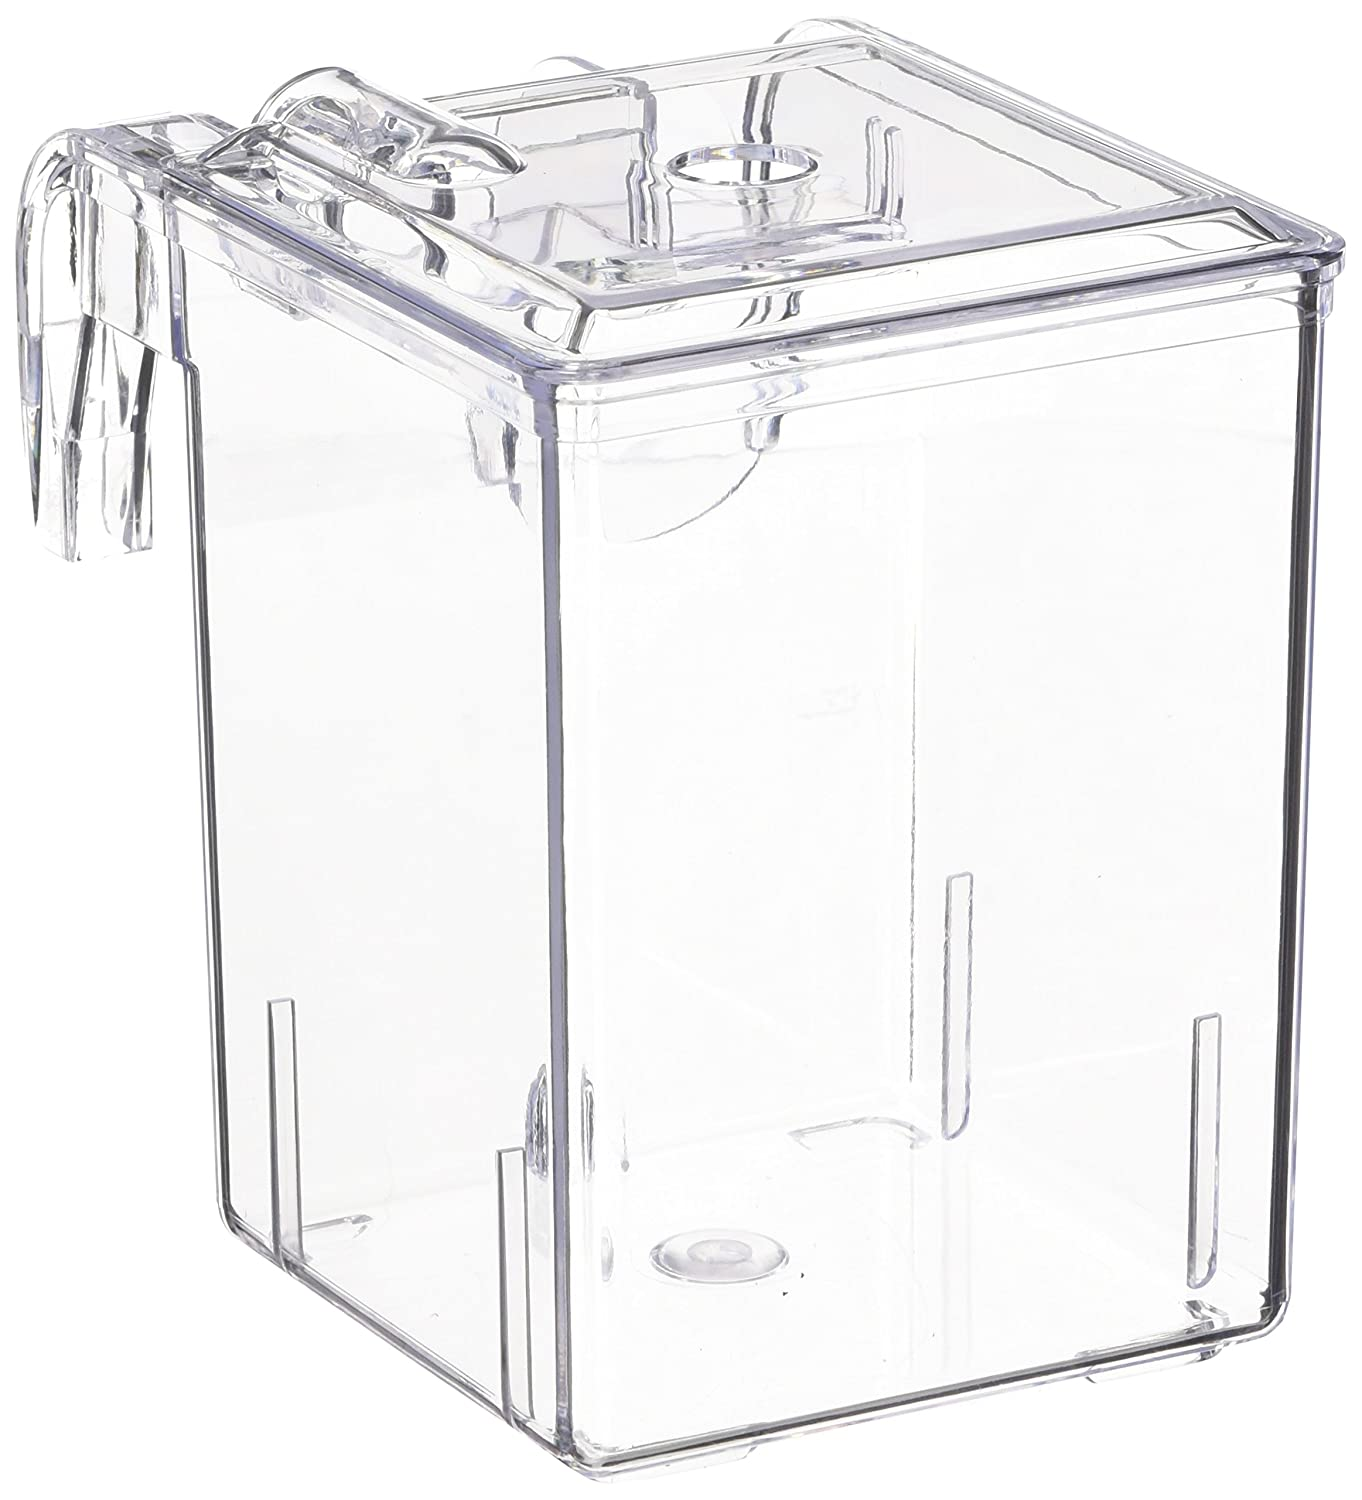 Marina Hang-On Breeding Box, Large 10943